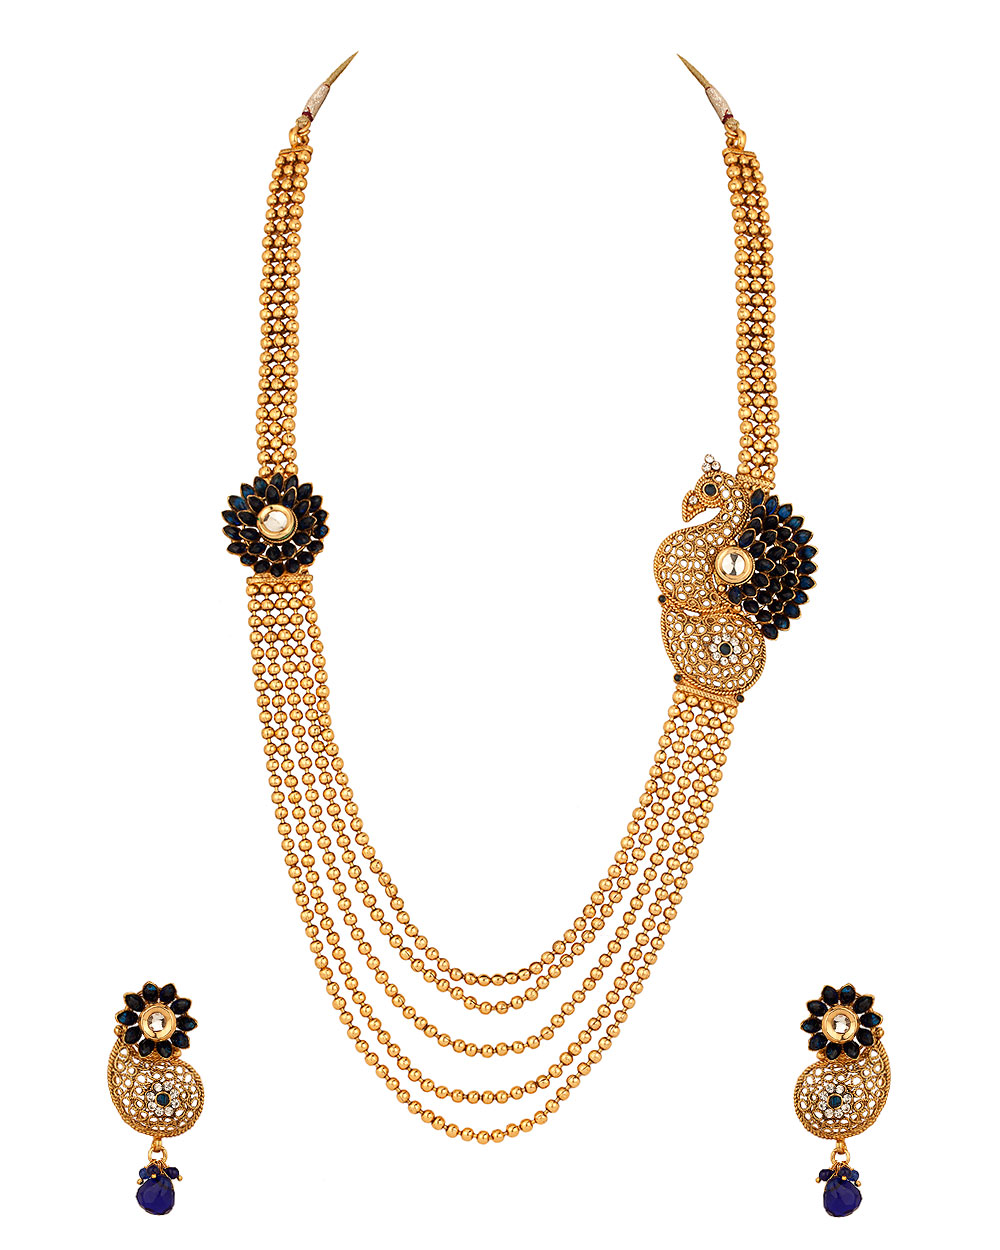 Buy Gold Plated Cz Necklace Set With Fascinating Peacock Design ...